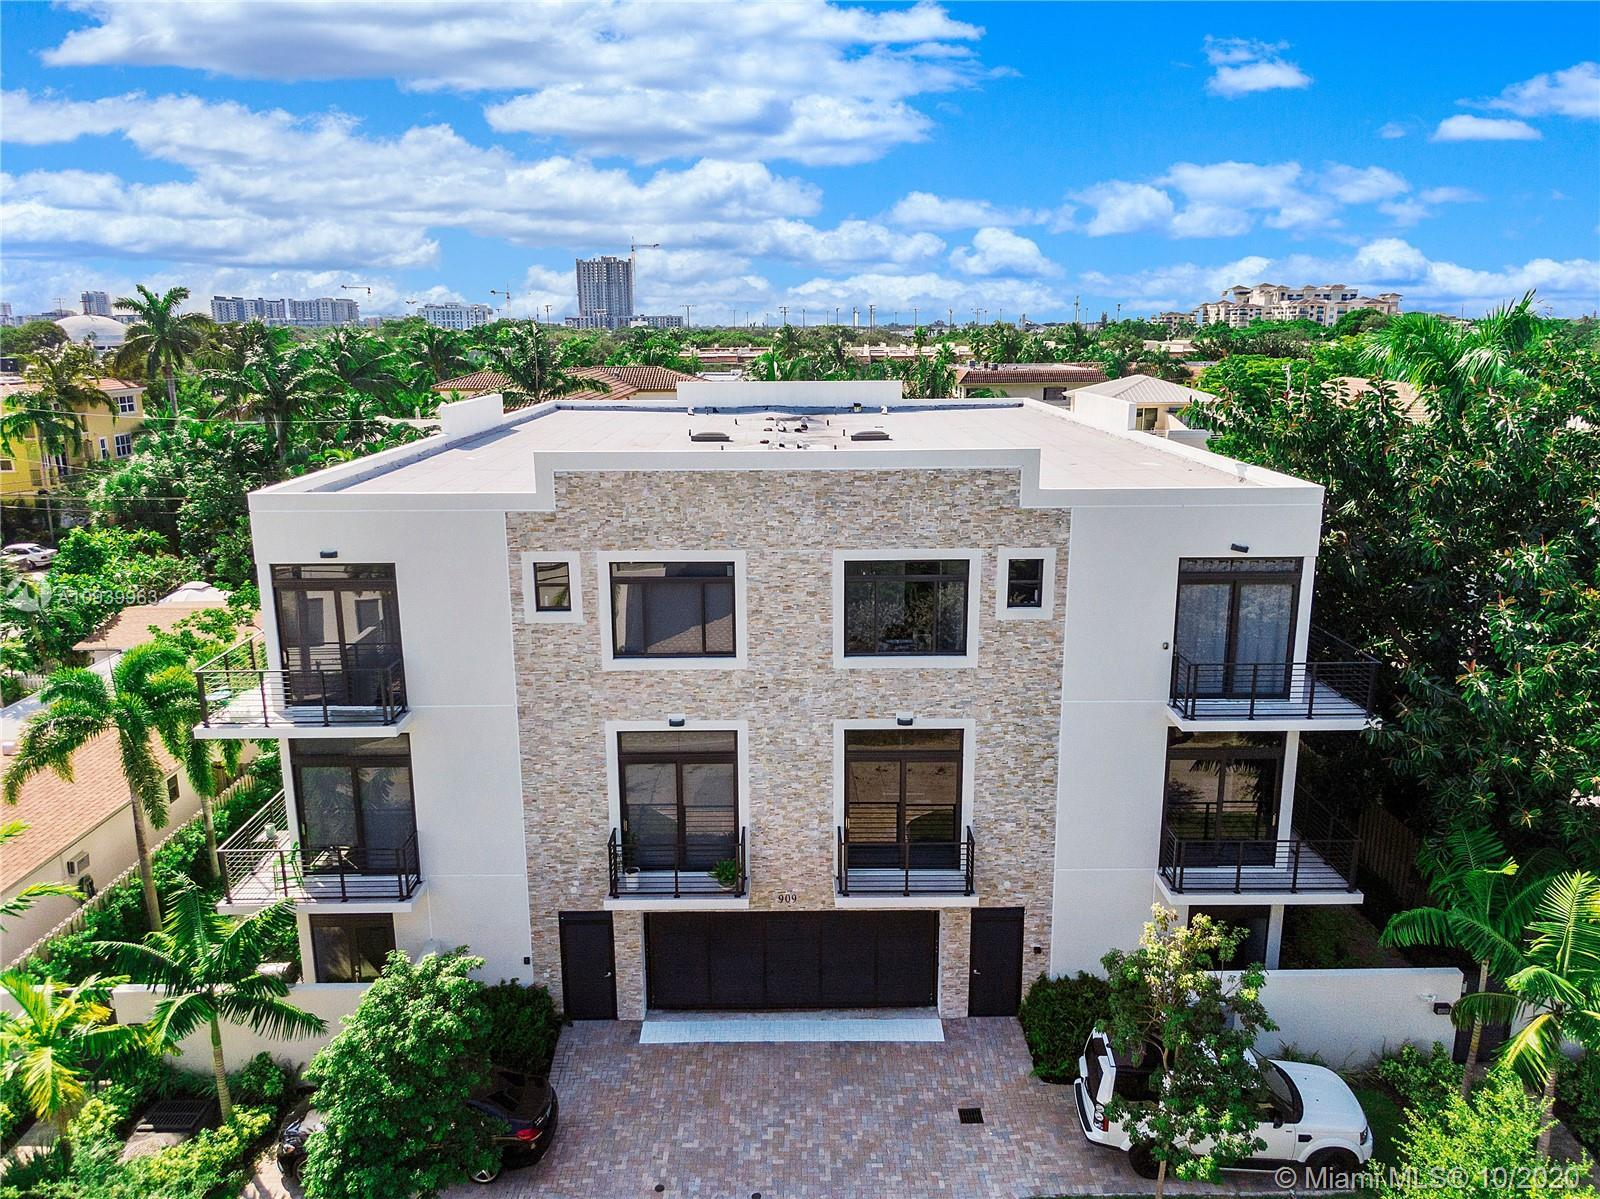 New construction in the heart of Fort Lauderdale's Victoria Park offers luxury in this sleek, contem